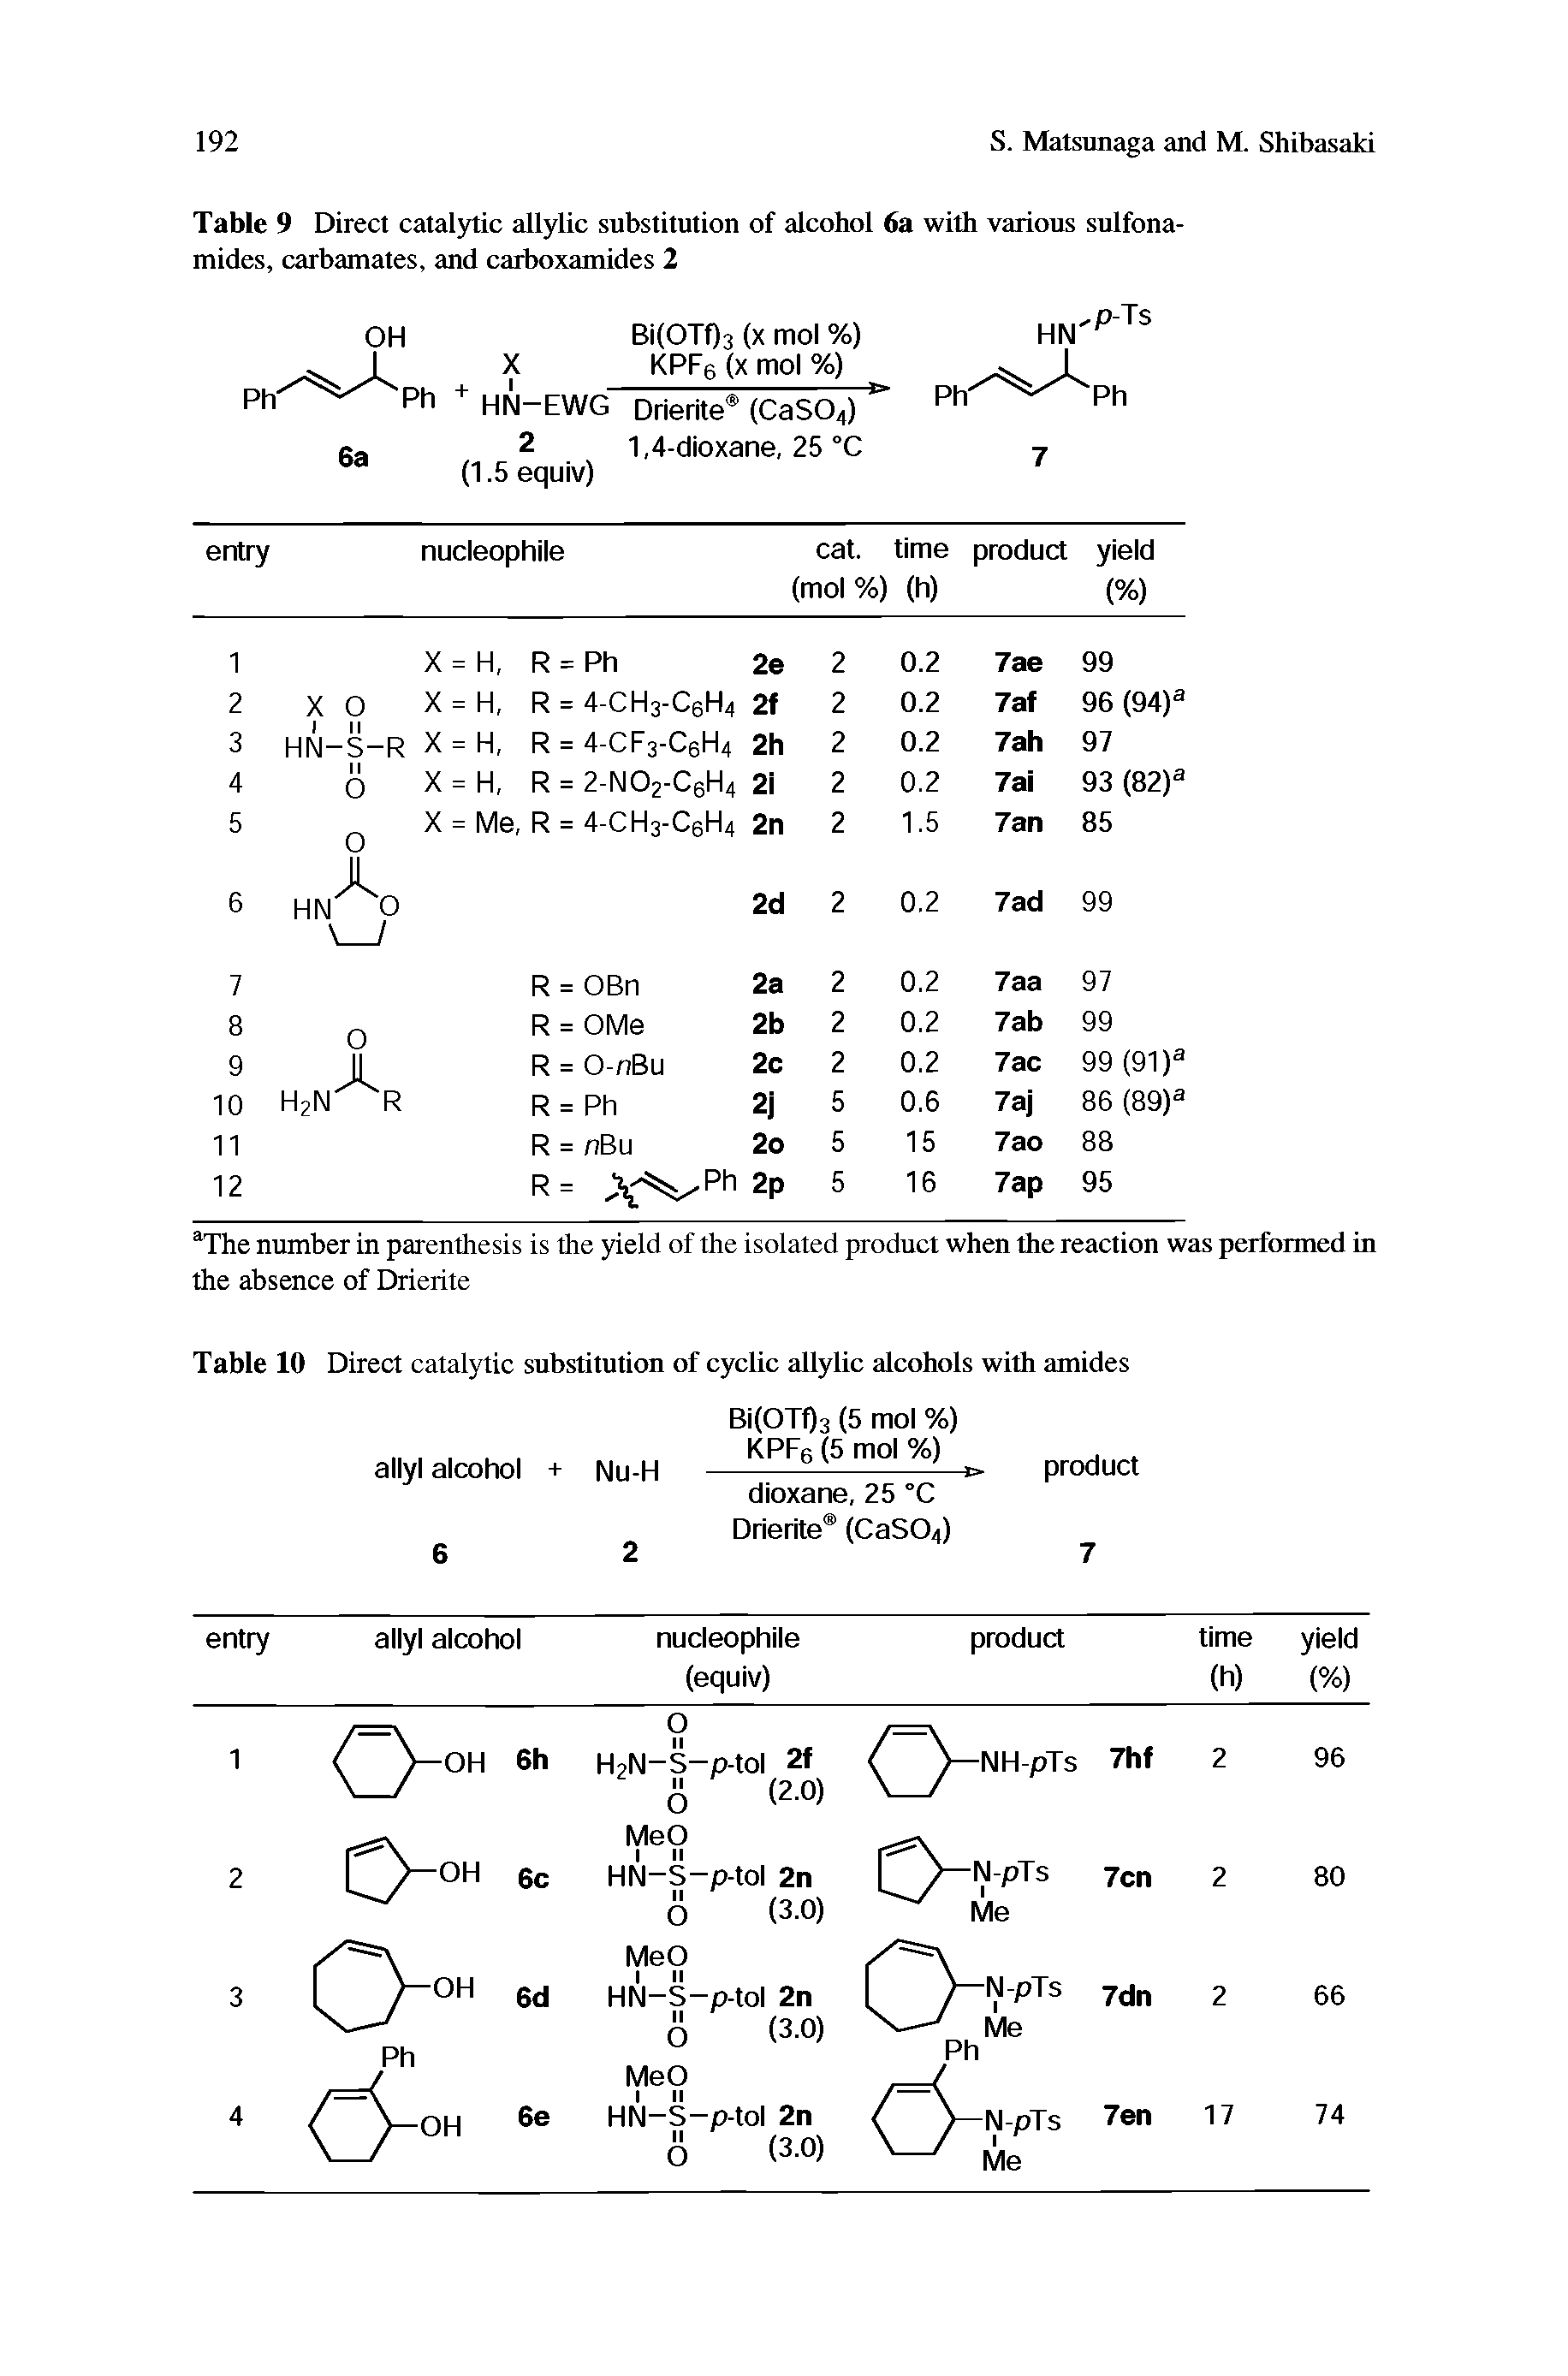 "Table 9 Direct <a href=""/info/catalytic_allylation"">catalytic allylic</a> substitution of alcohol 6a with various sulfonamides, carbamates, and carboxamides 2"